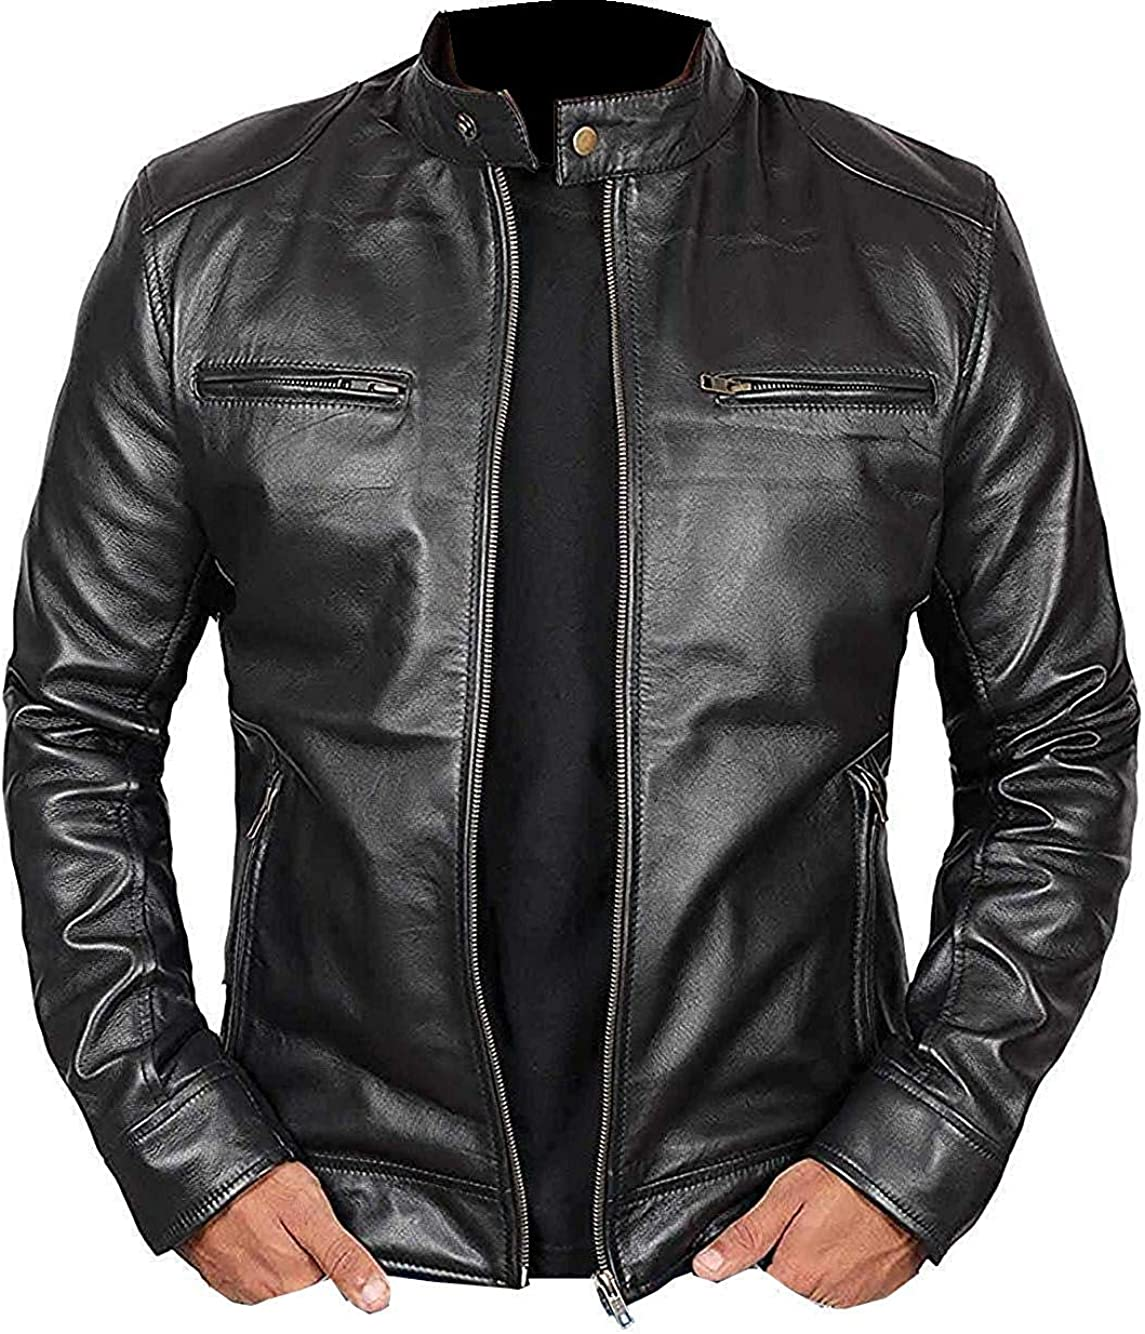 Febzo Fashions New Men Motorcycle Leather Jacket with Hoodie - Pure Lambskin Bomber Leather Jacket